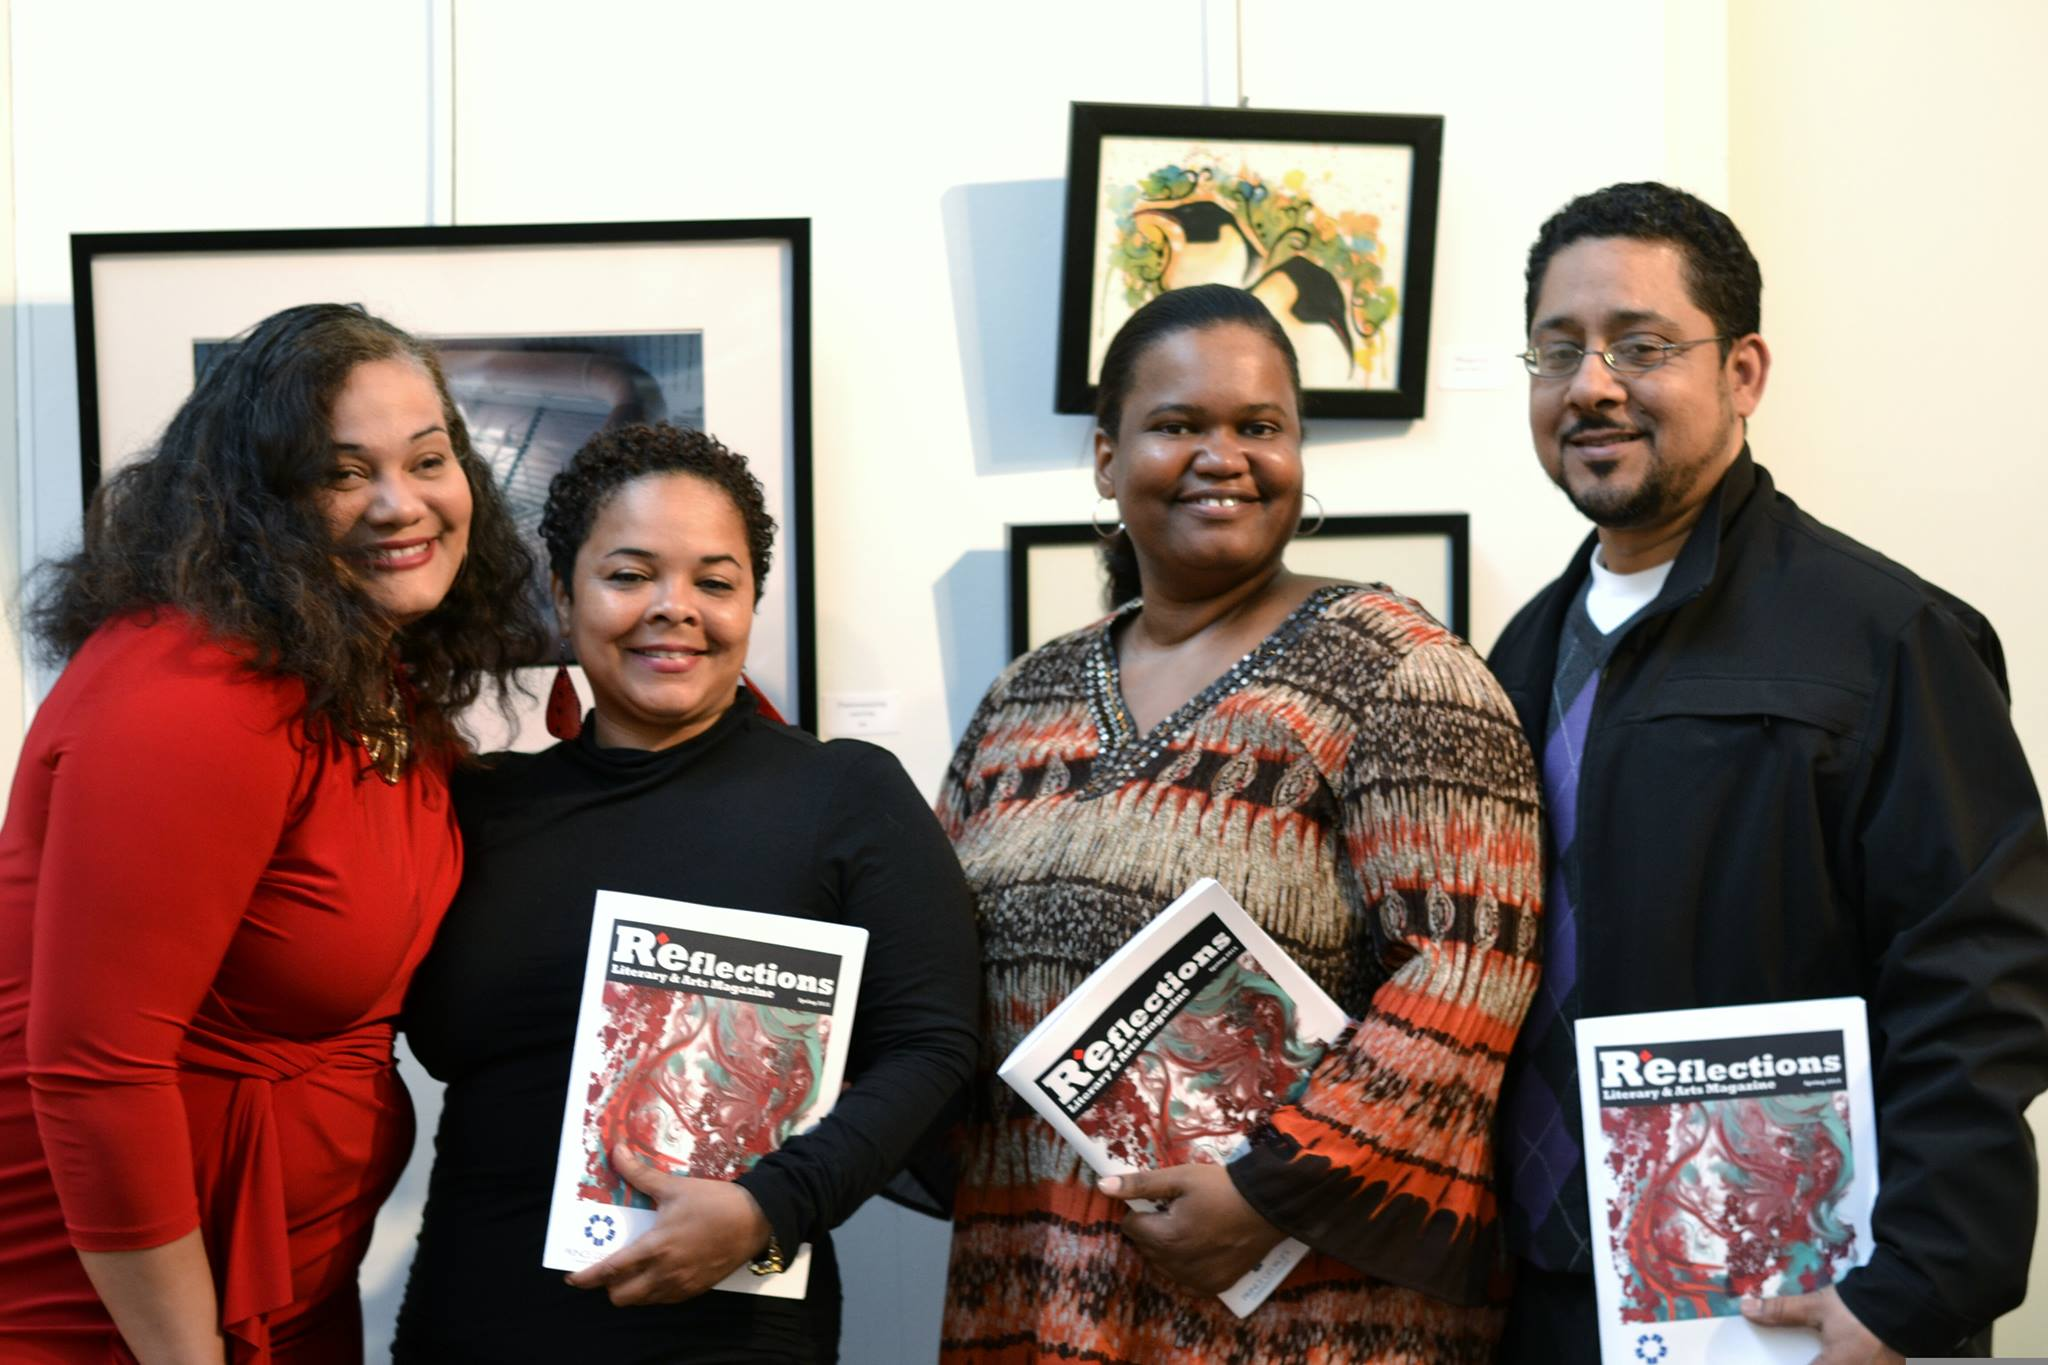 Liberated Muse Members Published in PGCC's Reflections Literary Magazine